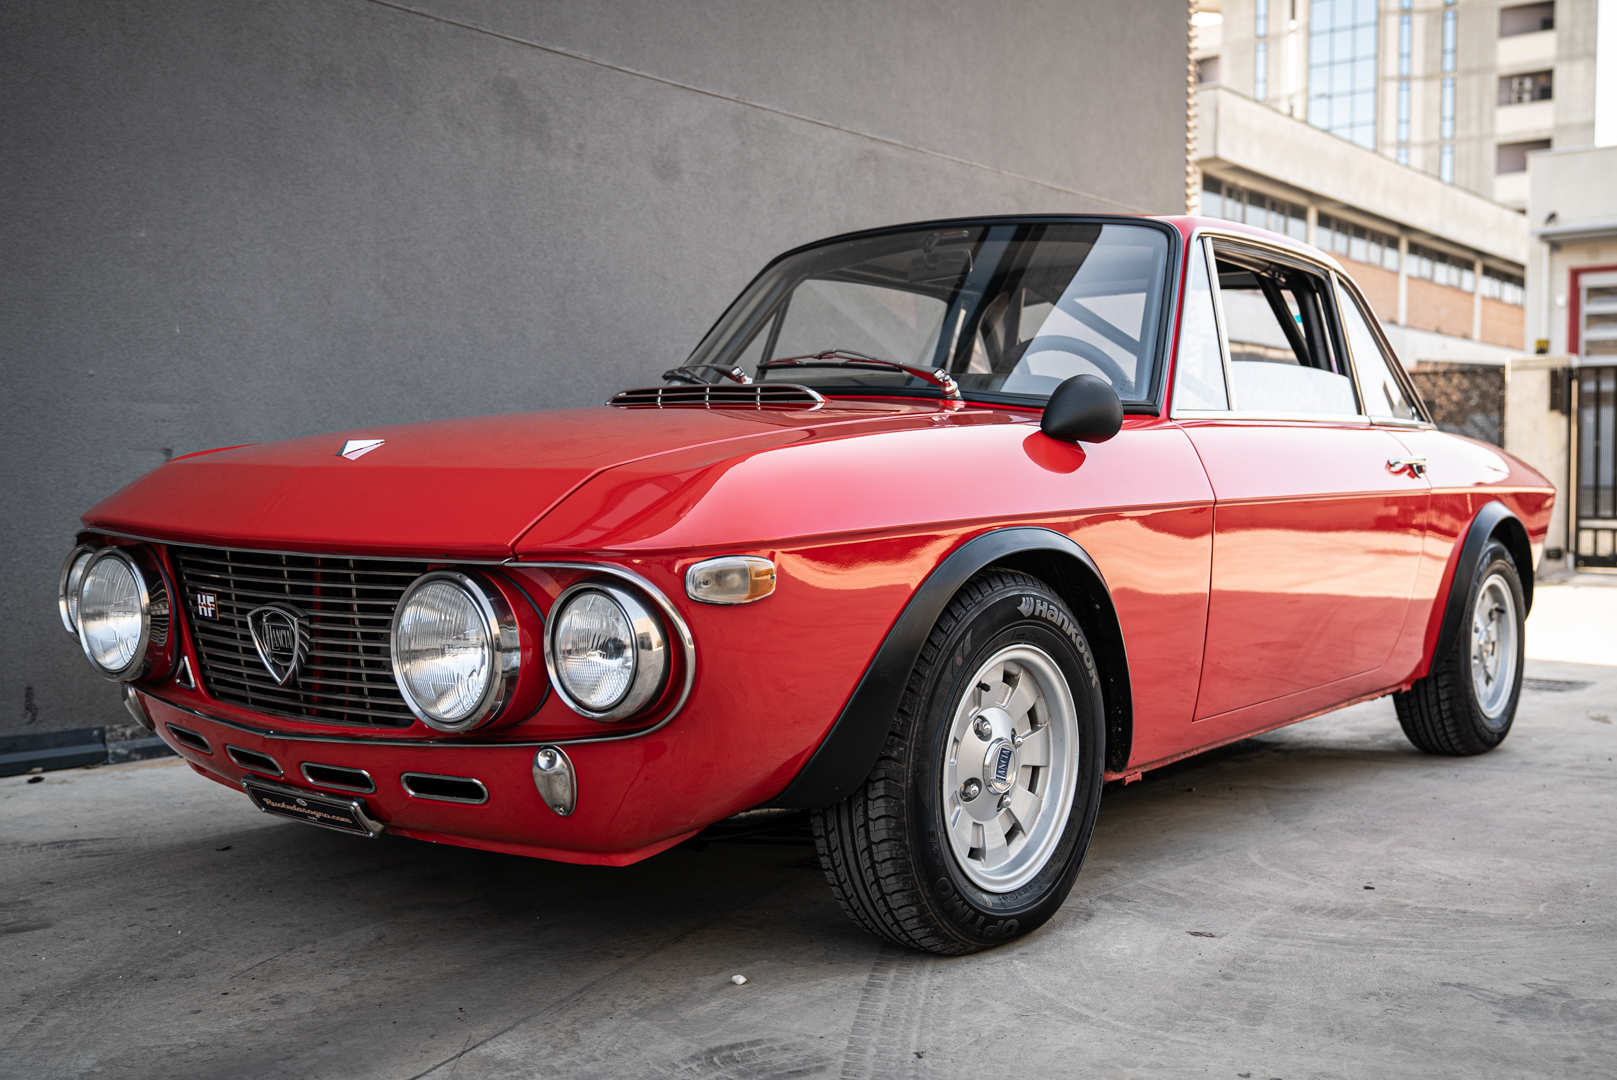 Picture of 1970 LANCIA FULVIA HF 1600 FANALONE For Sale